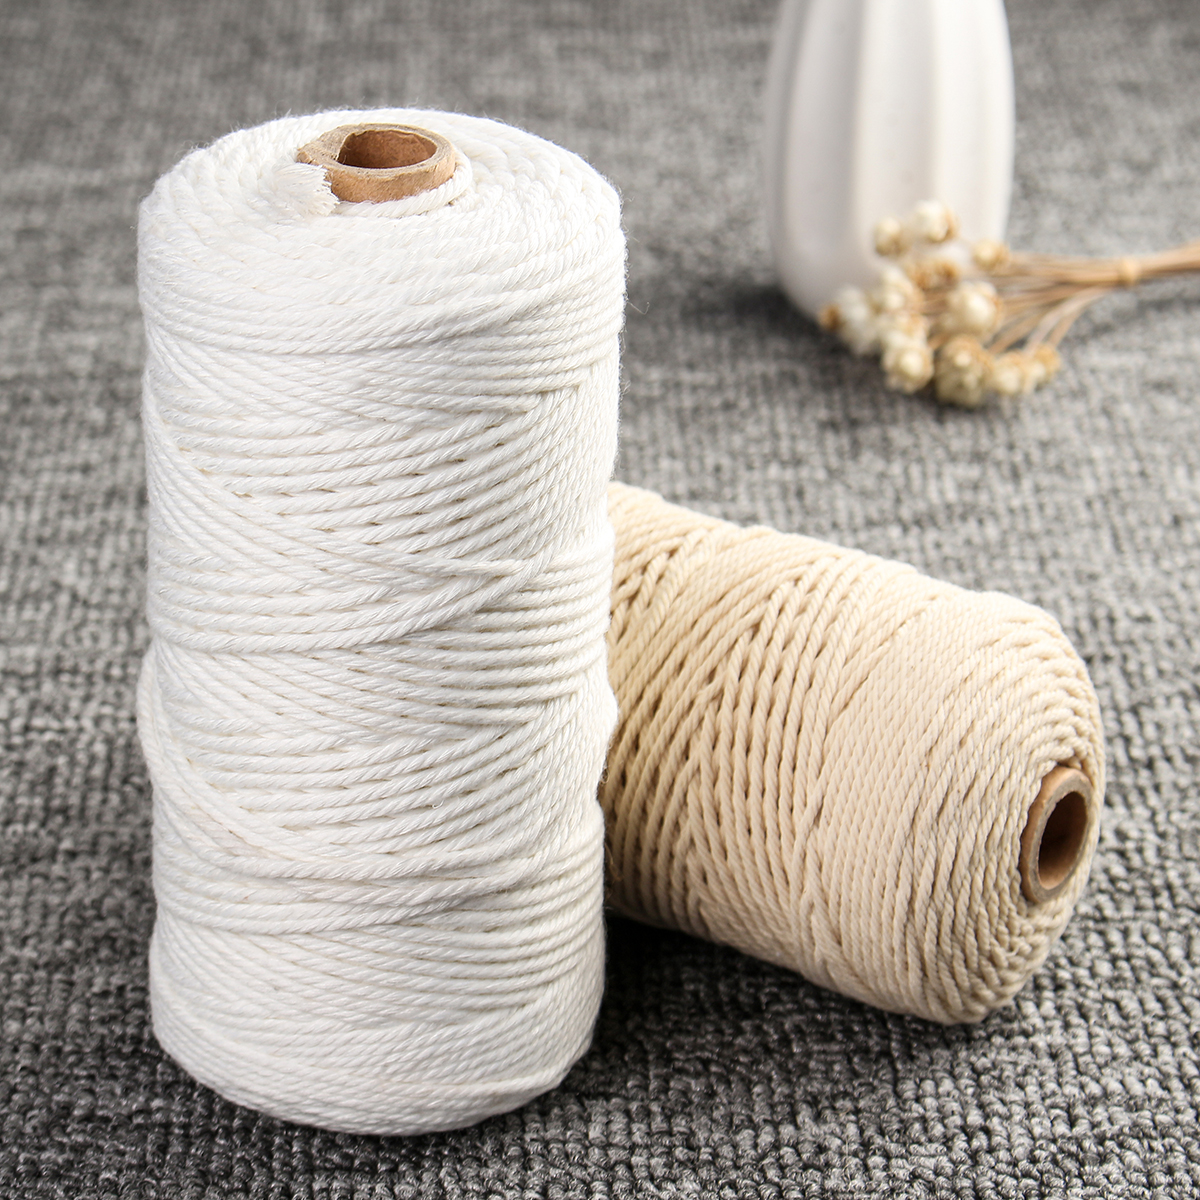 2mm x 200m Natural Beige White Twisted 100% Pure Cotton Cord Rope DIY Crafts Macrame String